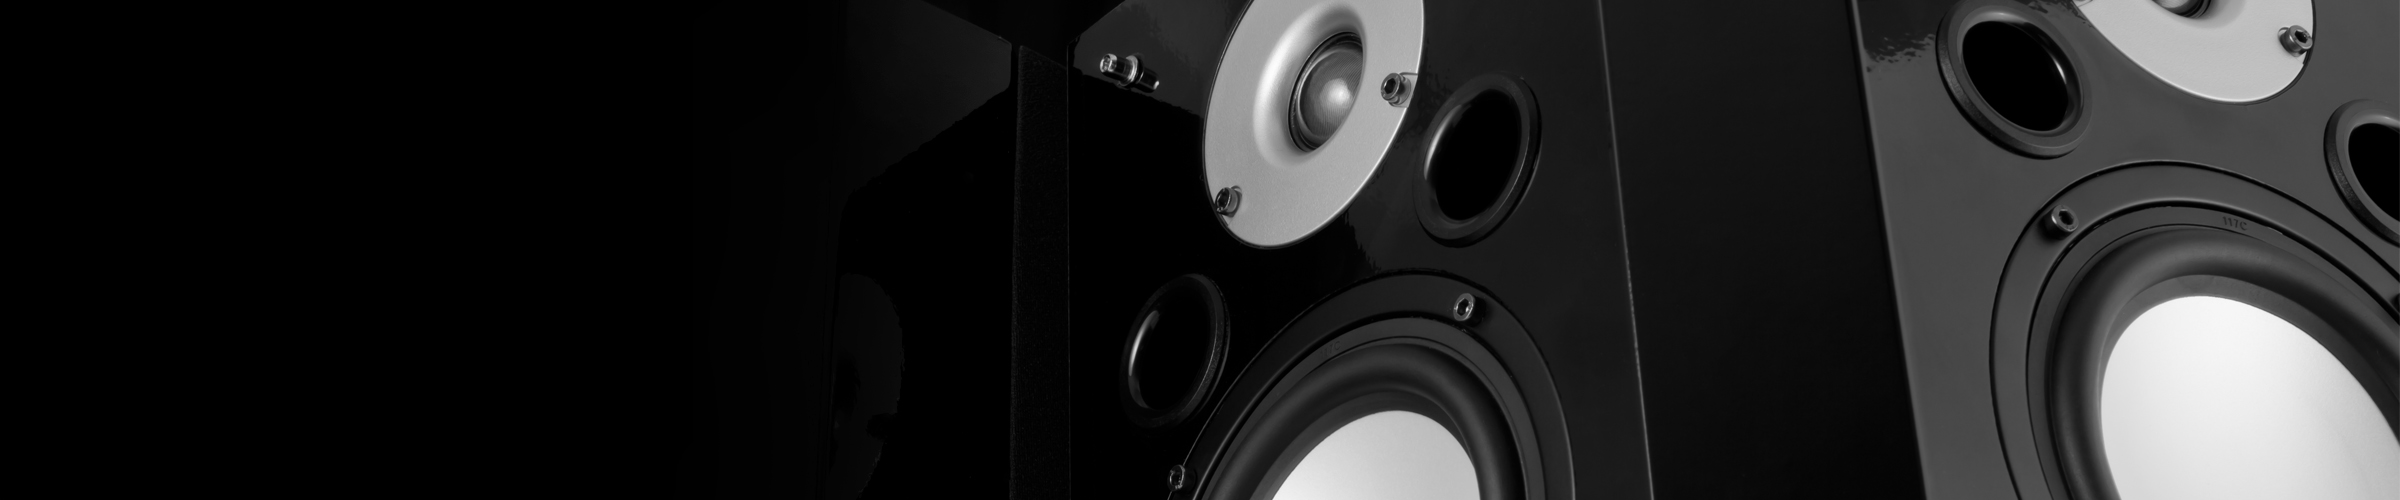 XLBP-DW Bipolar Surround Sound Speakers Intro